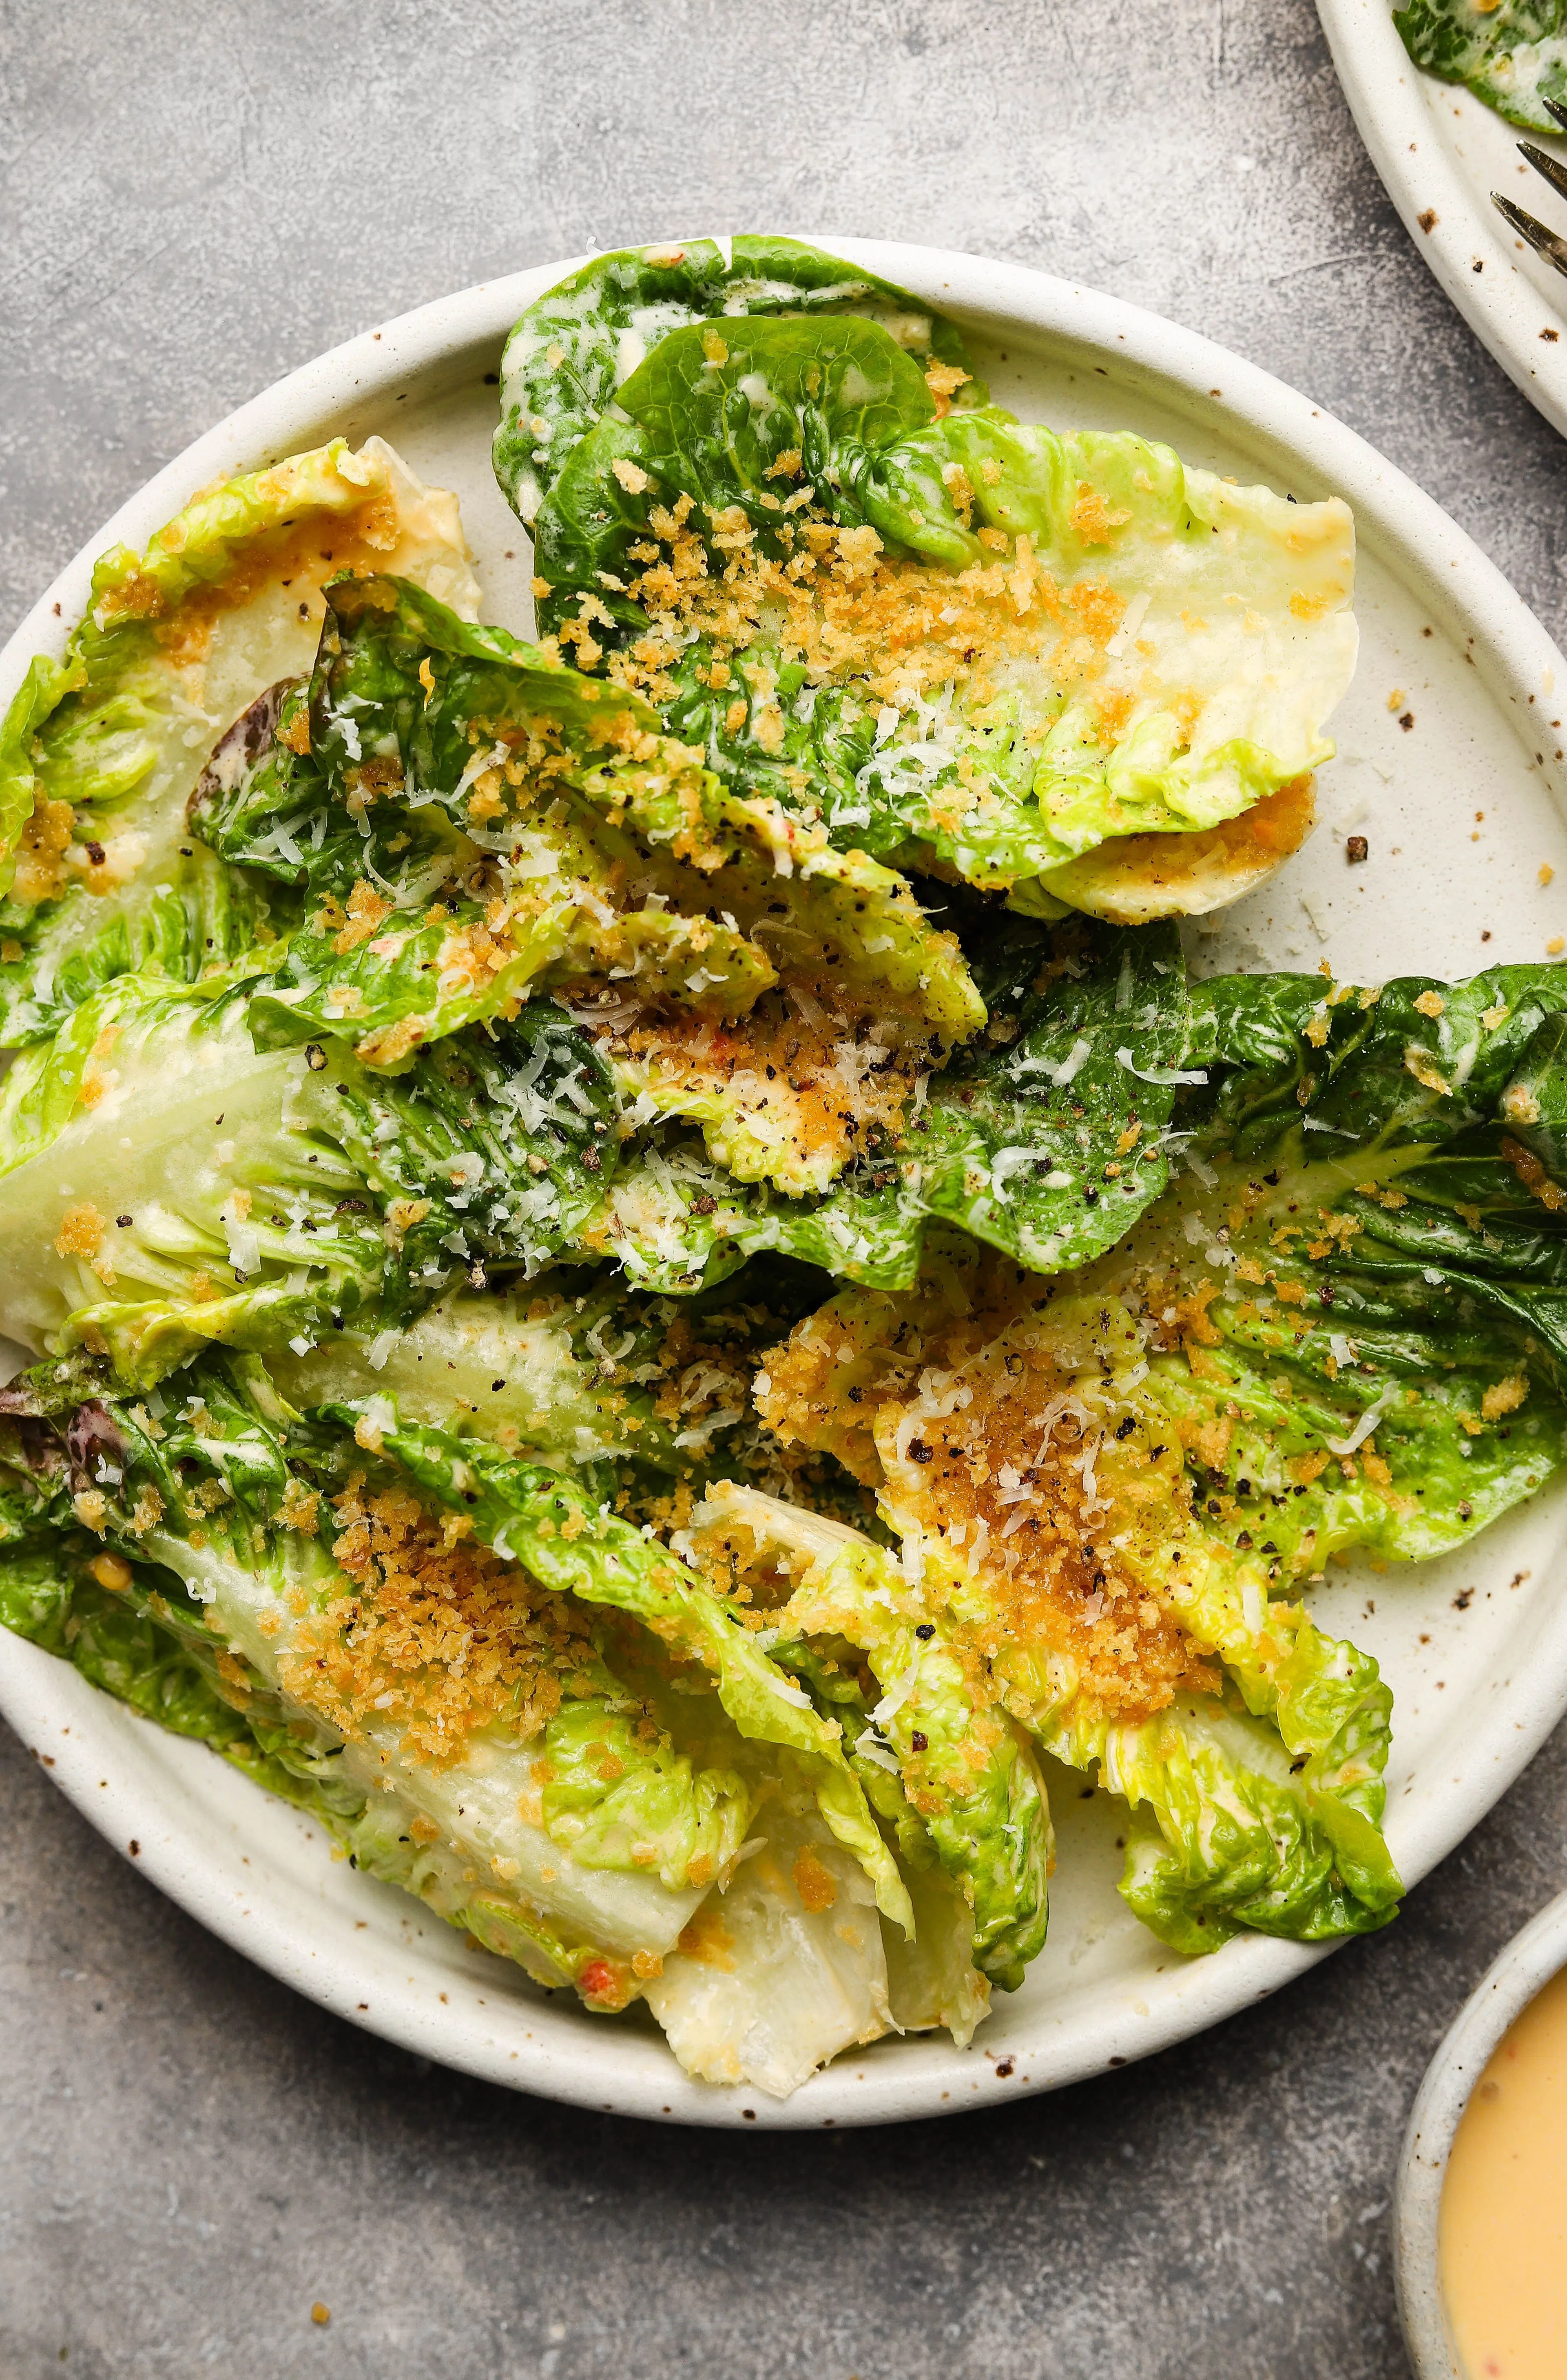 Little Gem Caesar Salad With Panko Breadcrumbs Recipe In 2020 Caesar Salad Delicious Healthy Recipes Stuffed Peppers